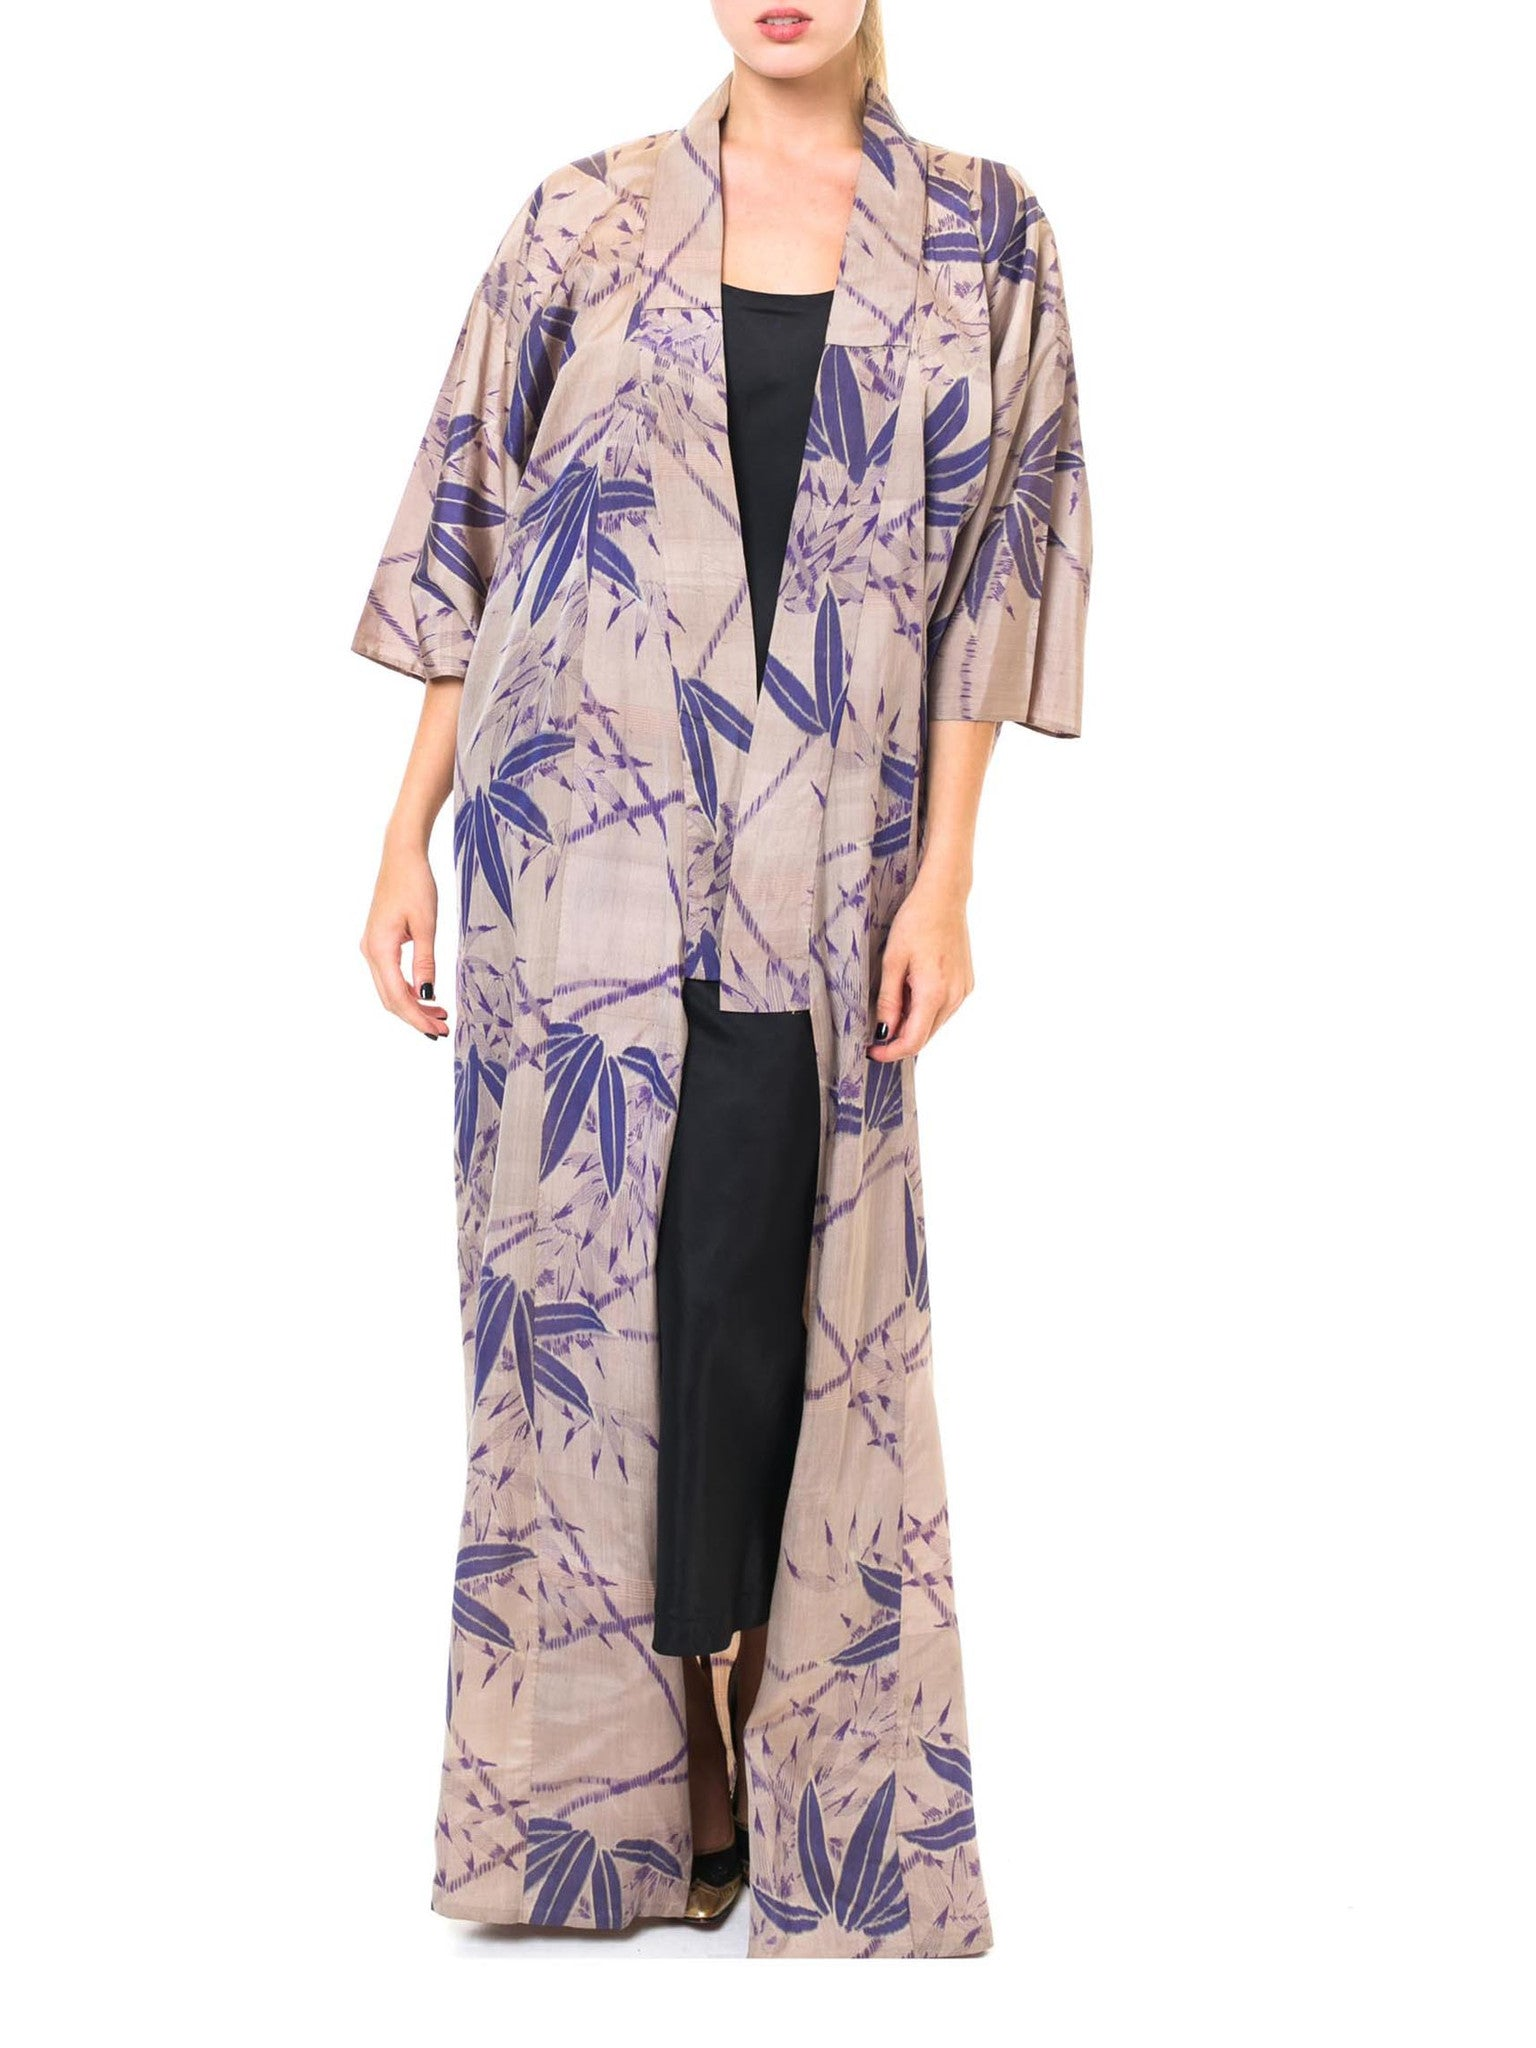 Luxurious Taupe and Violet Floral Vintage 1950's Kimono